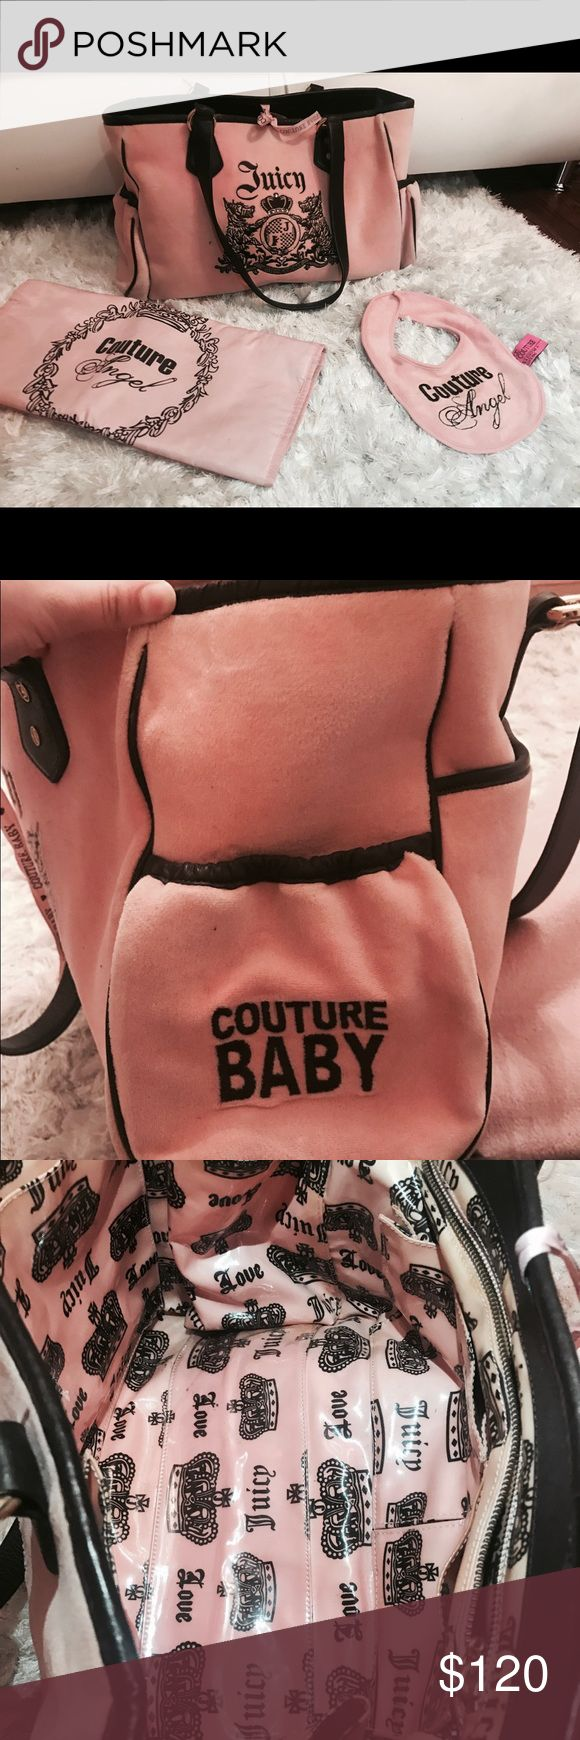 Juicy couture Diaper bag Pink juicy couture pink authentic diaper bag with bib and changing mat . No stains and damages in great condition . Just like new Juicy Couture Bags Baby Bags